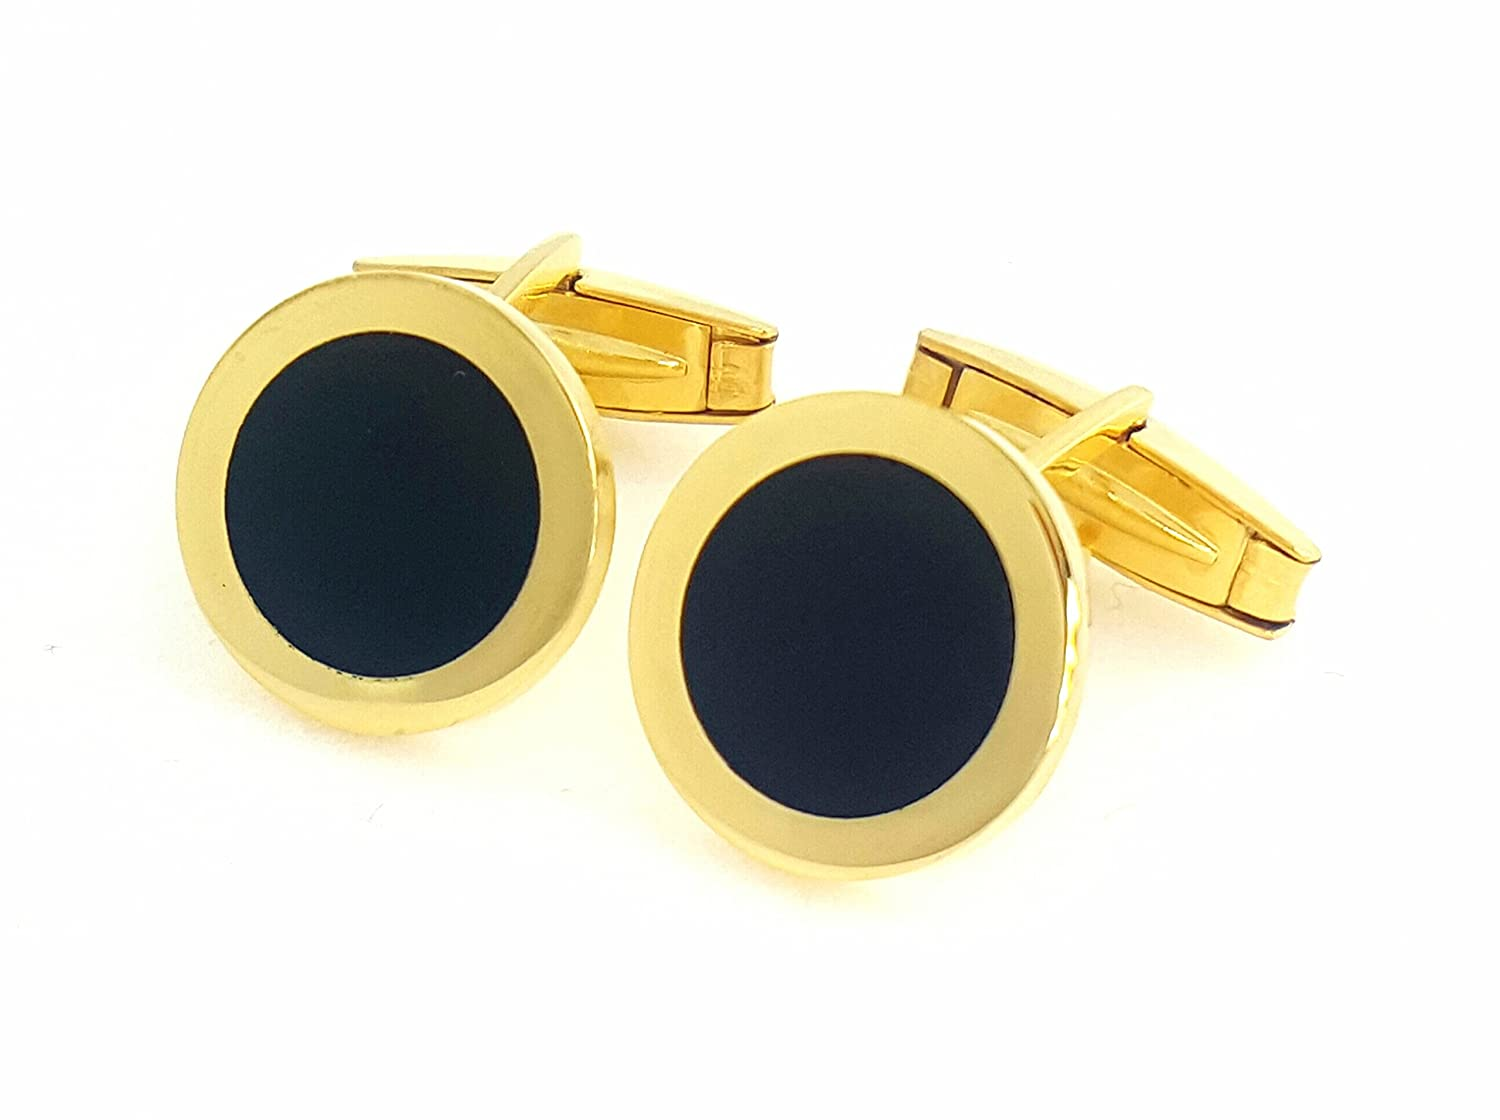 18 Karat Gold Overlay 925 Solid Sterling Silver Cufflinks WITH BLACK ENAMEL(MADE IN ITALY) cf14